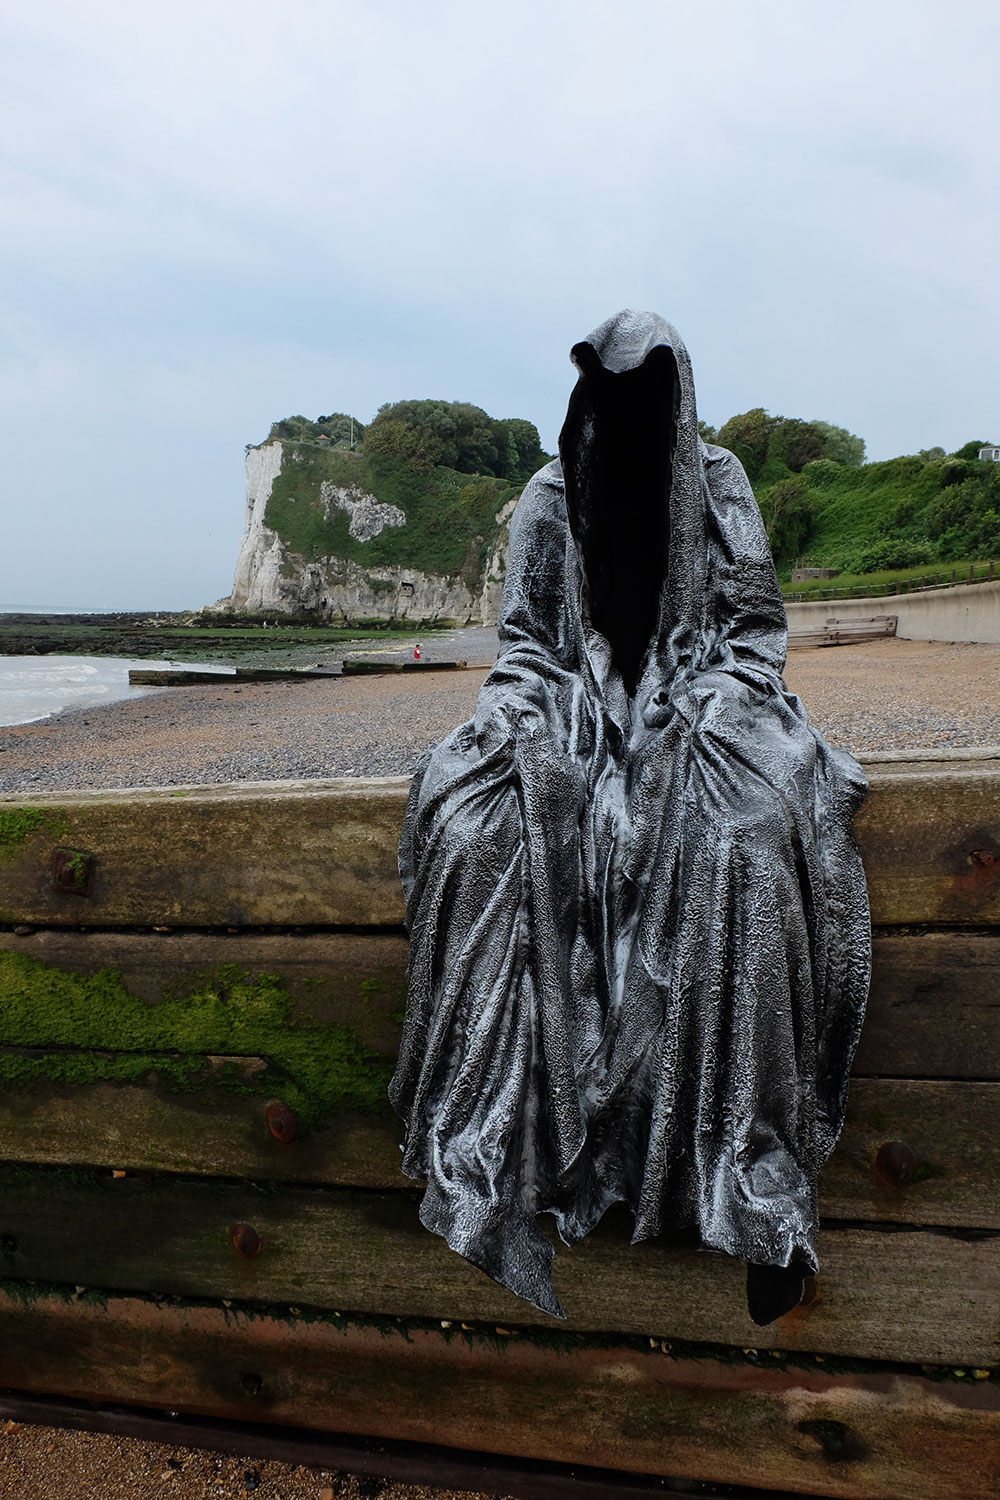 guardians-of-guardians-of-time-manfred-kili-kielnhofer-uk-england-dover-public-contemporary-art-arts-design-sculpture-6432